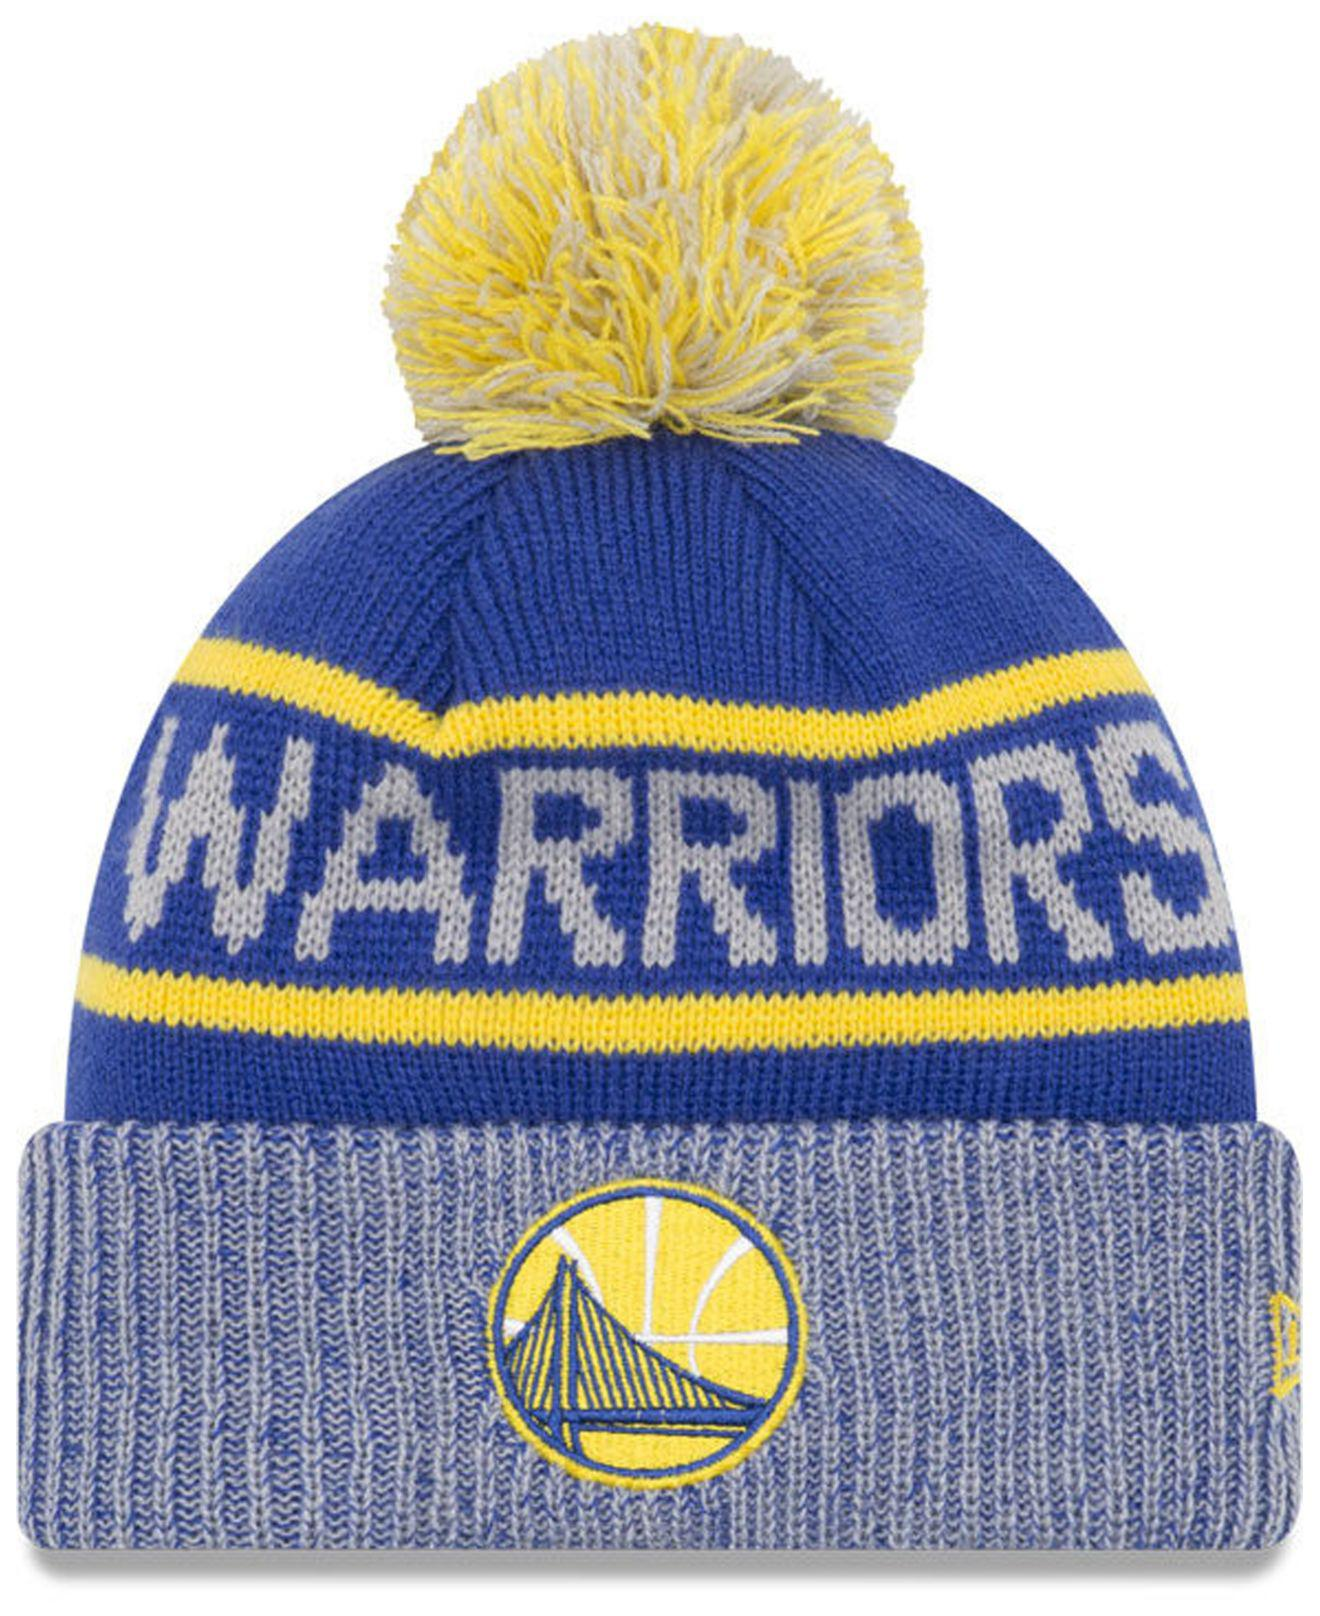 42c0c9ecca7c4 ... where to buy ktz. mens blue golden state warriors court force pom knit  hat 693d7